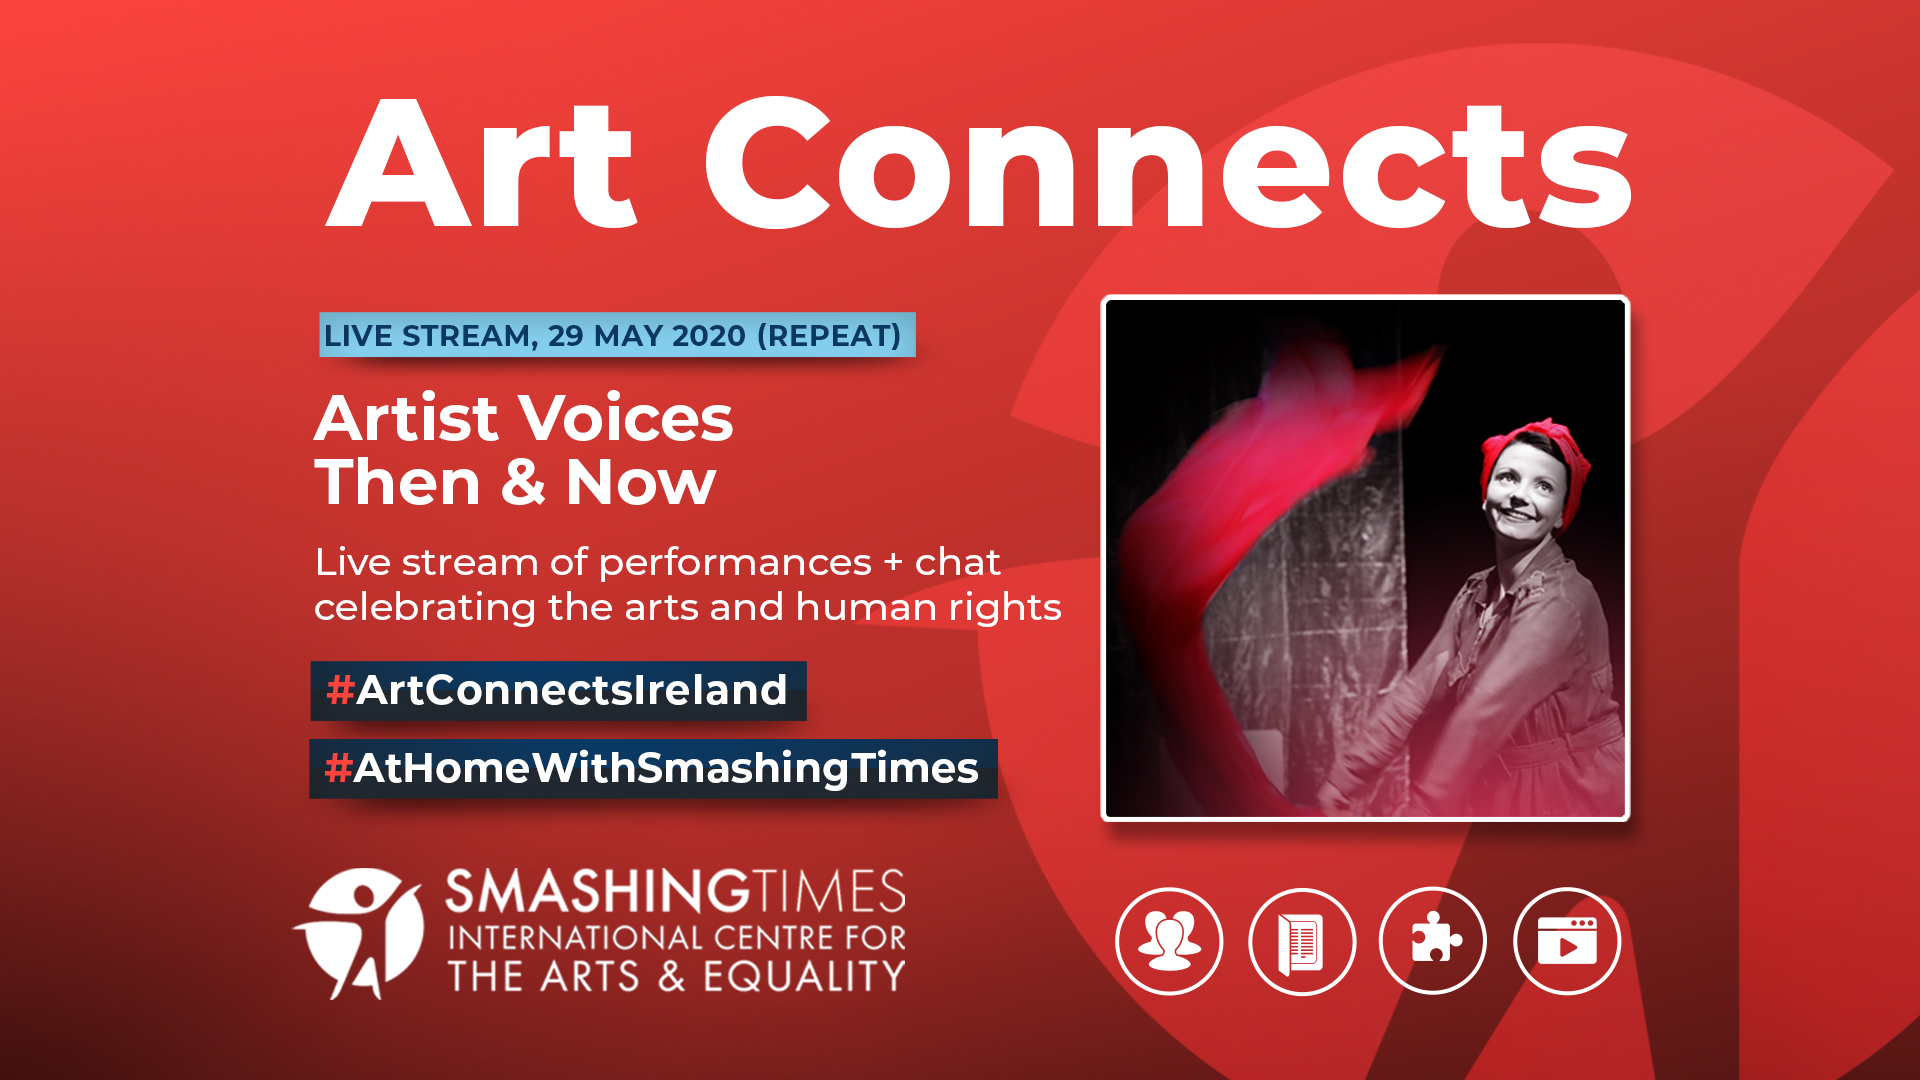 Livestream of Artist Voices Then and Now this Friday